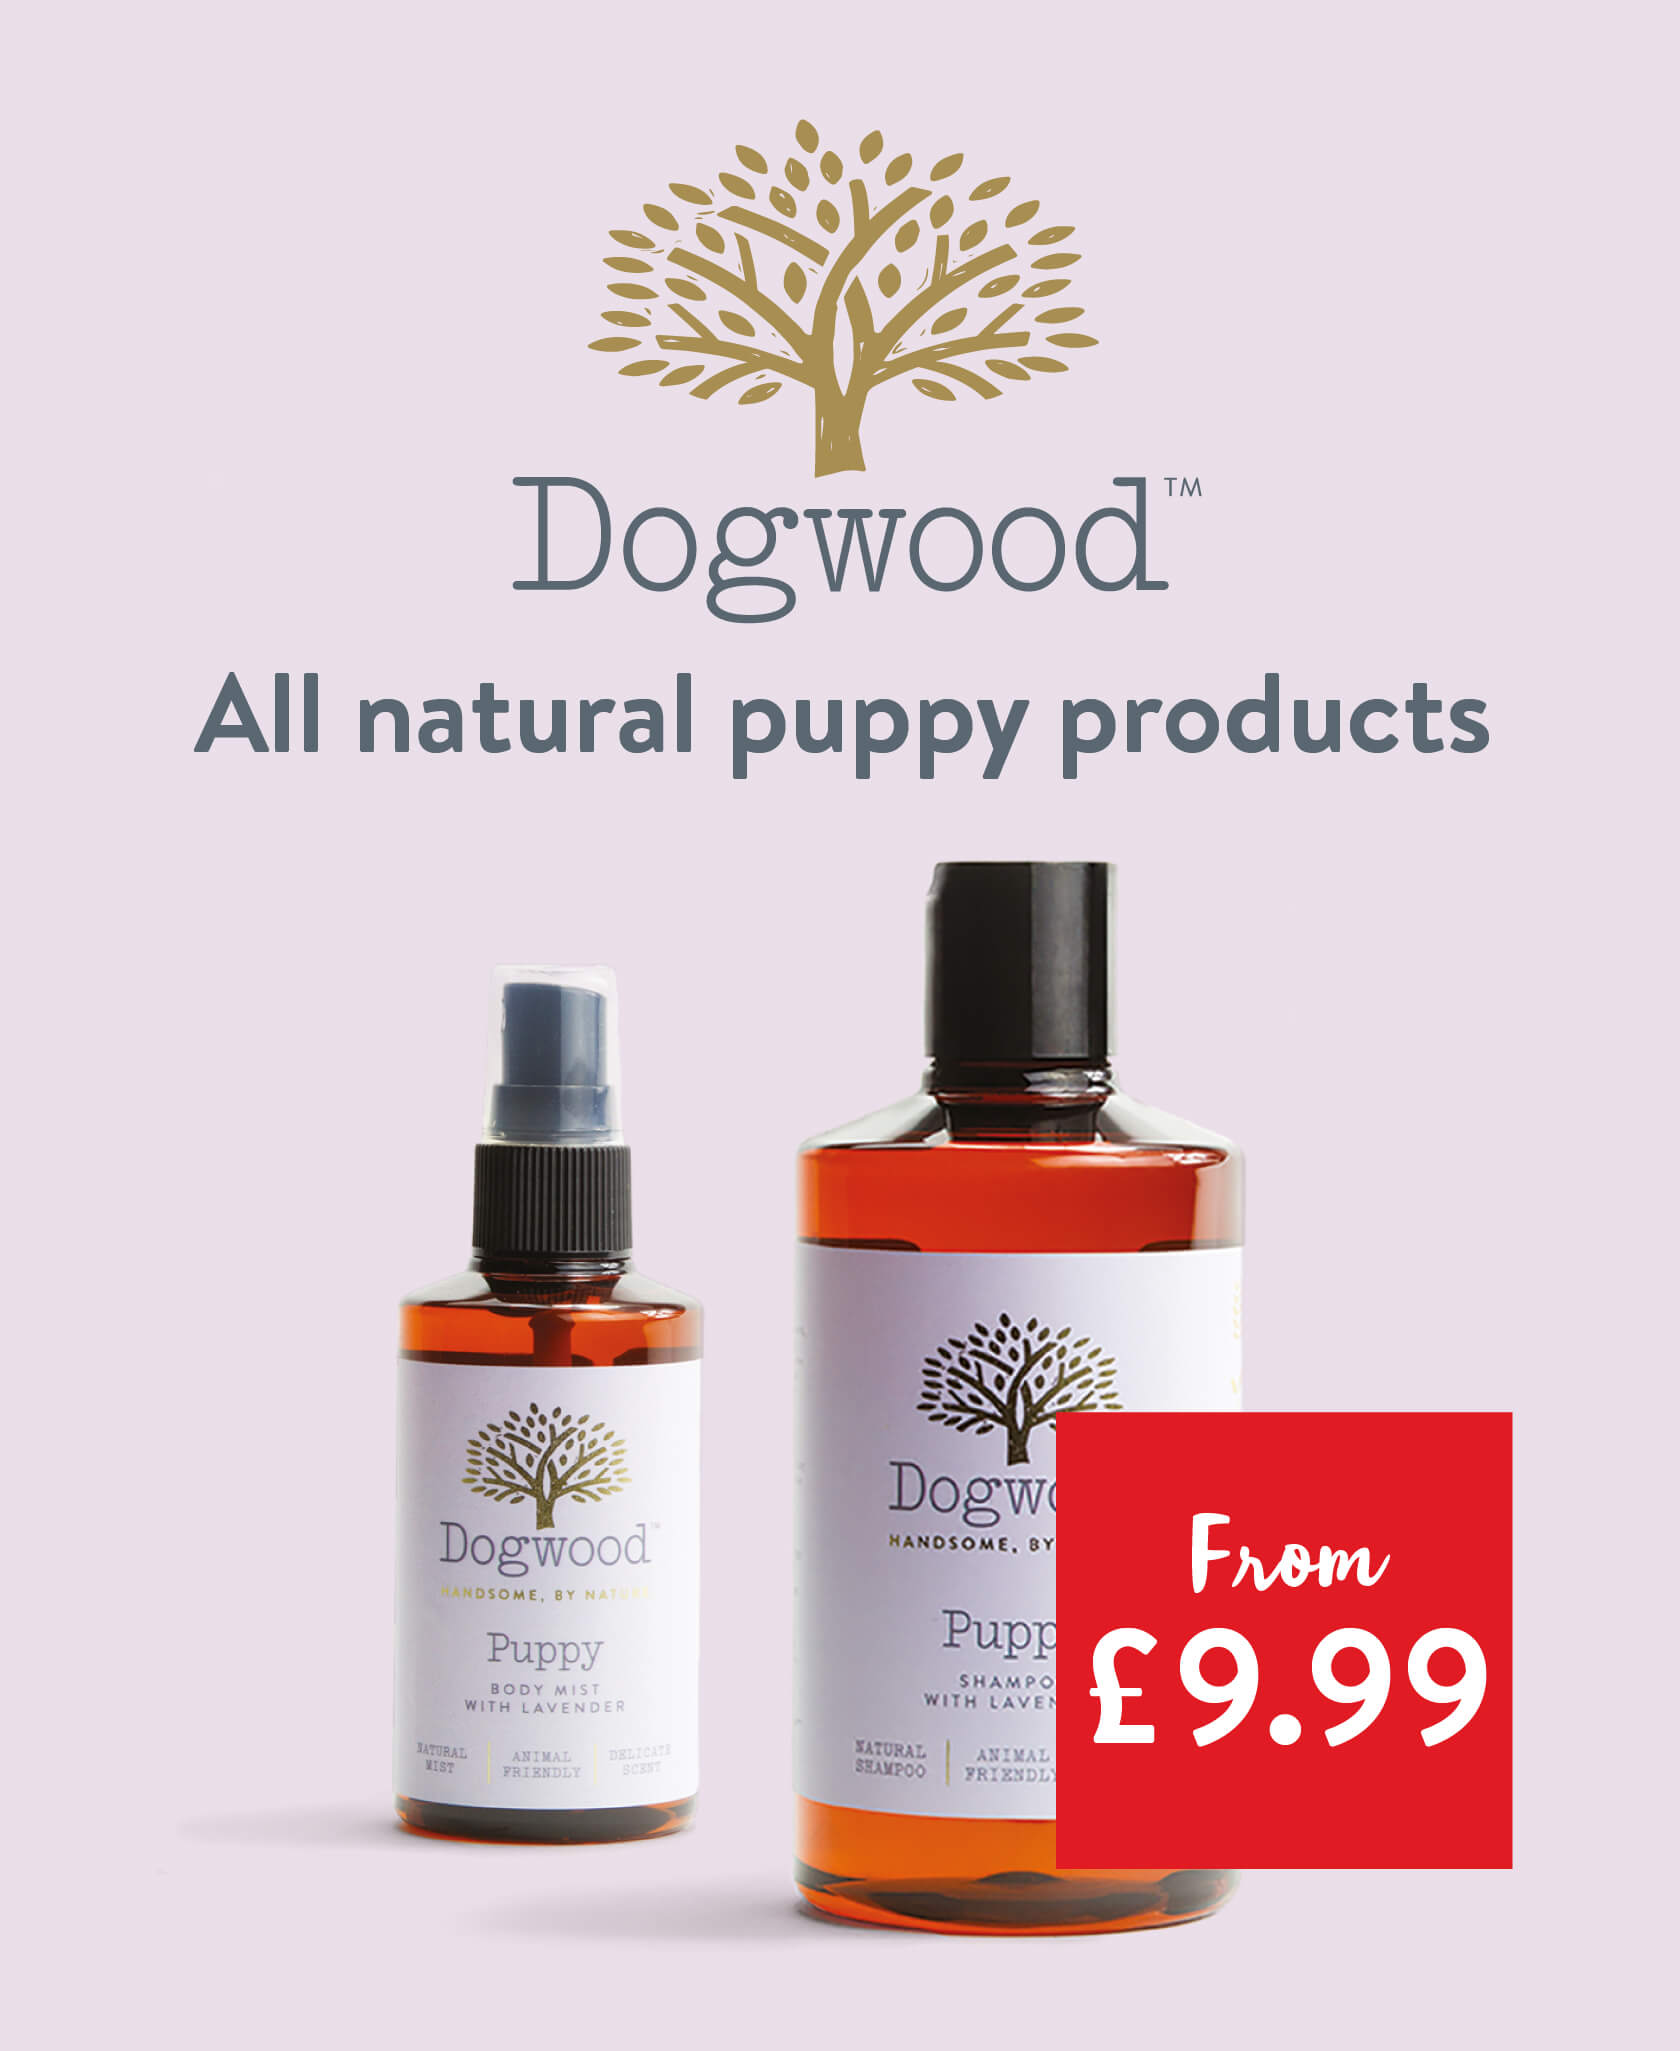 Dogwood - All natural puppy products from £9.99